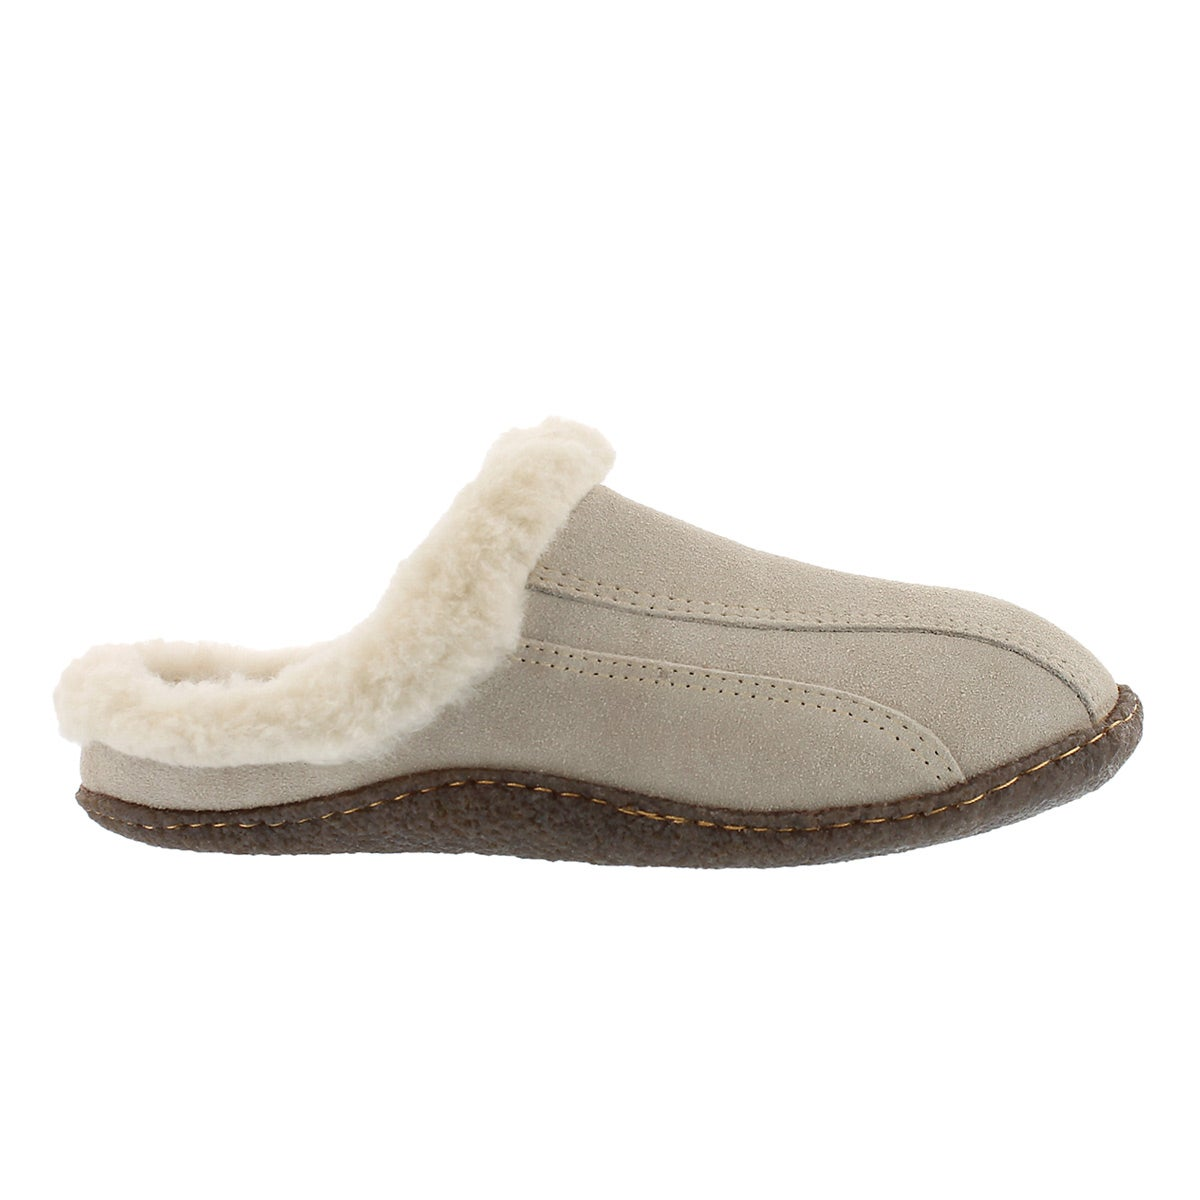 Lds Galaxie III sand open back slipper